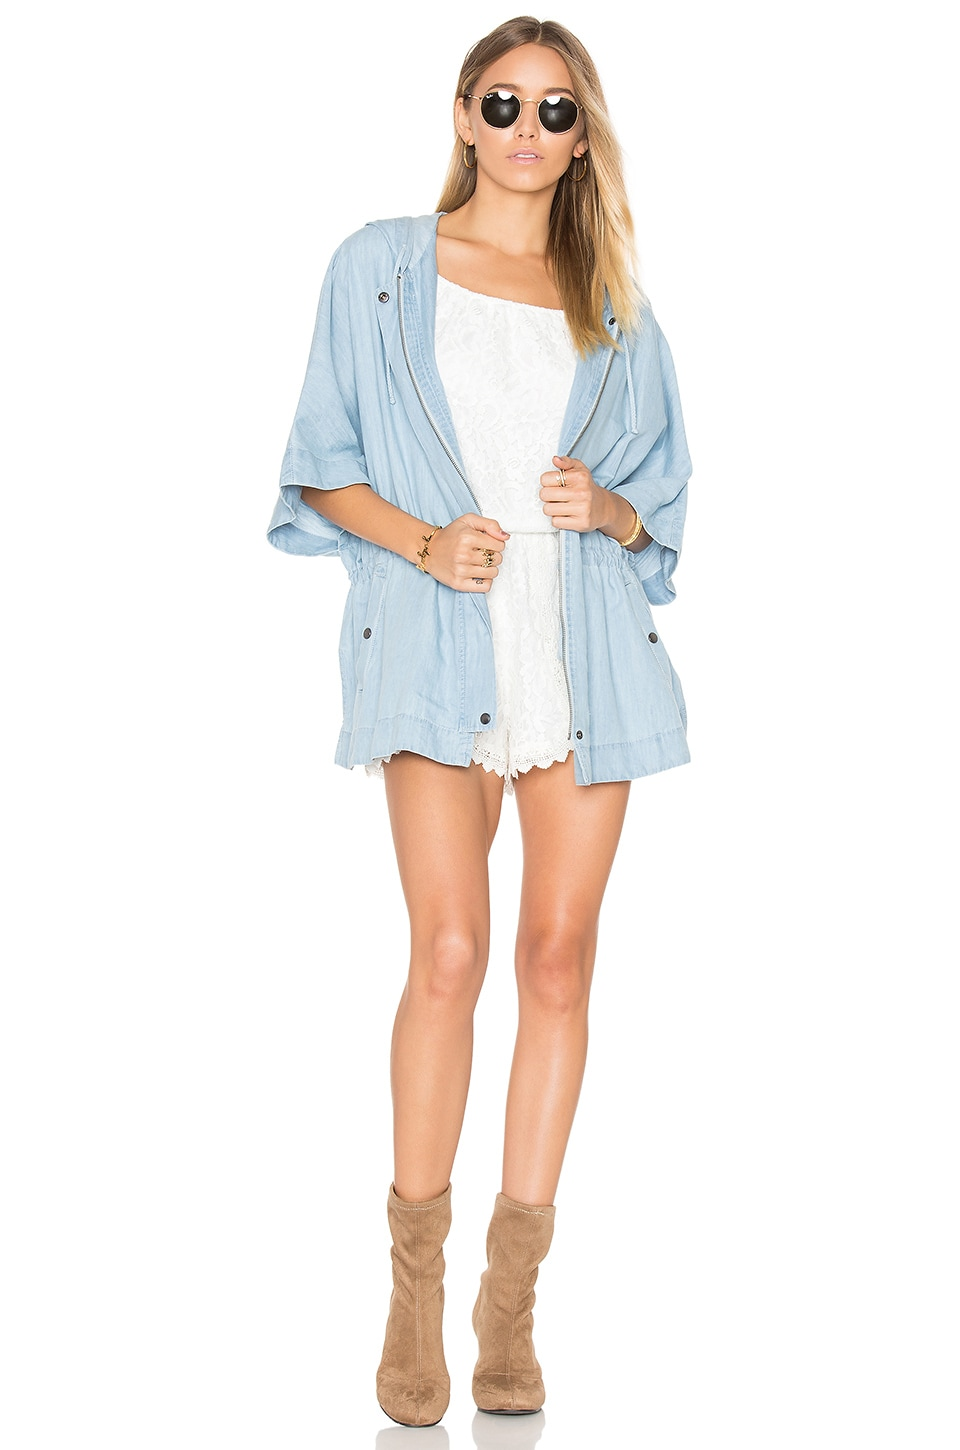 BB Dakota Jack by BB Dakota Adobo Parka in Washed Out Chambray